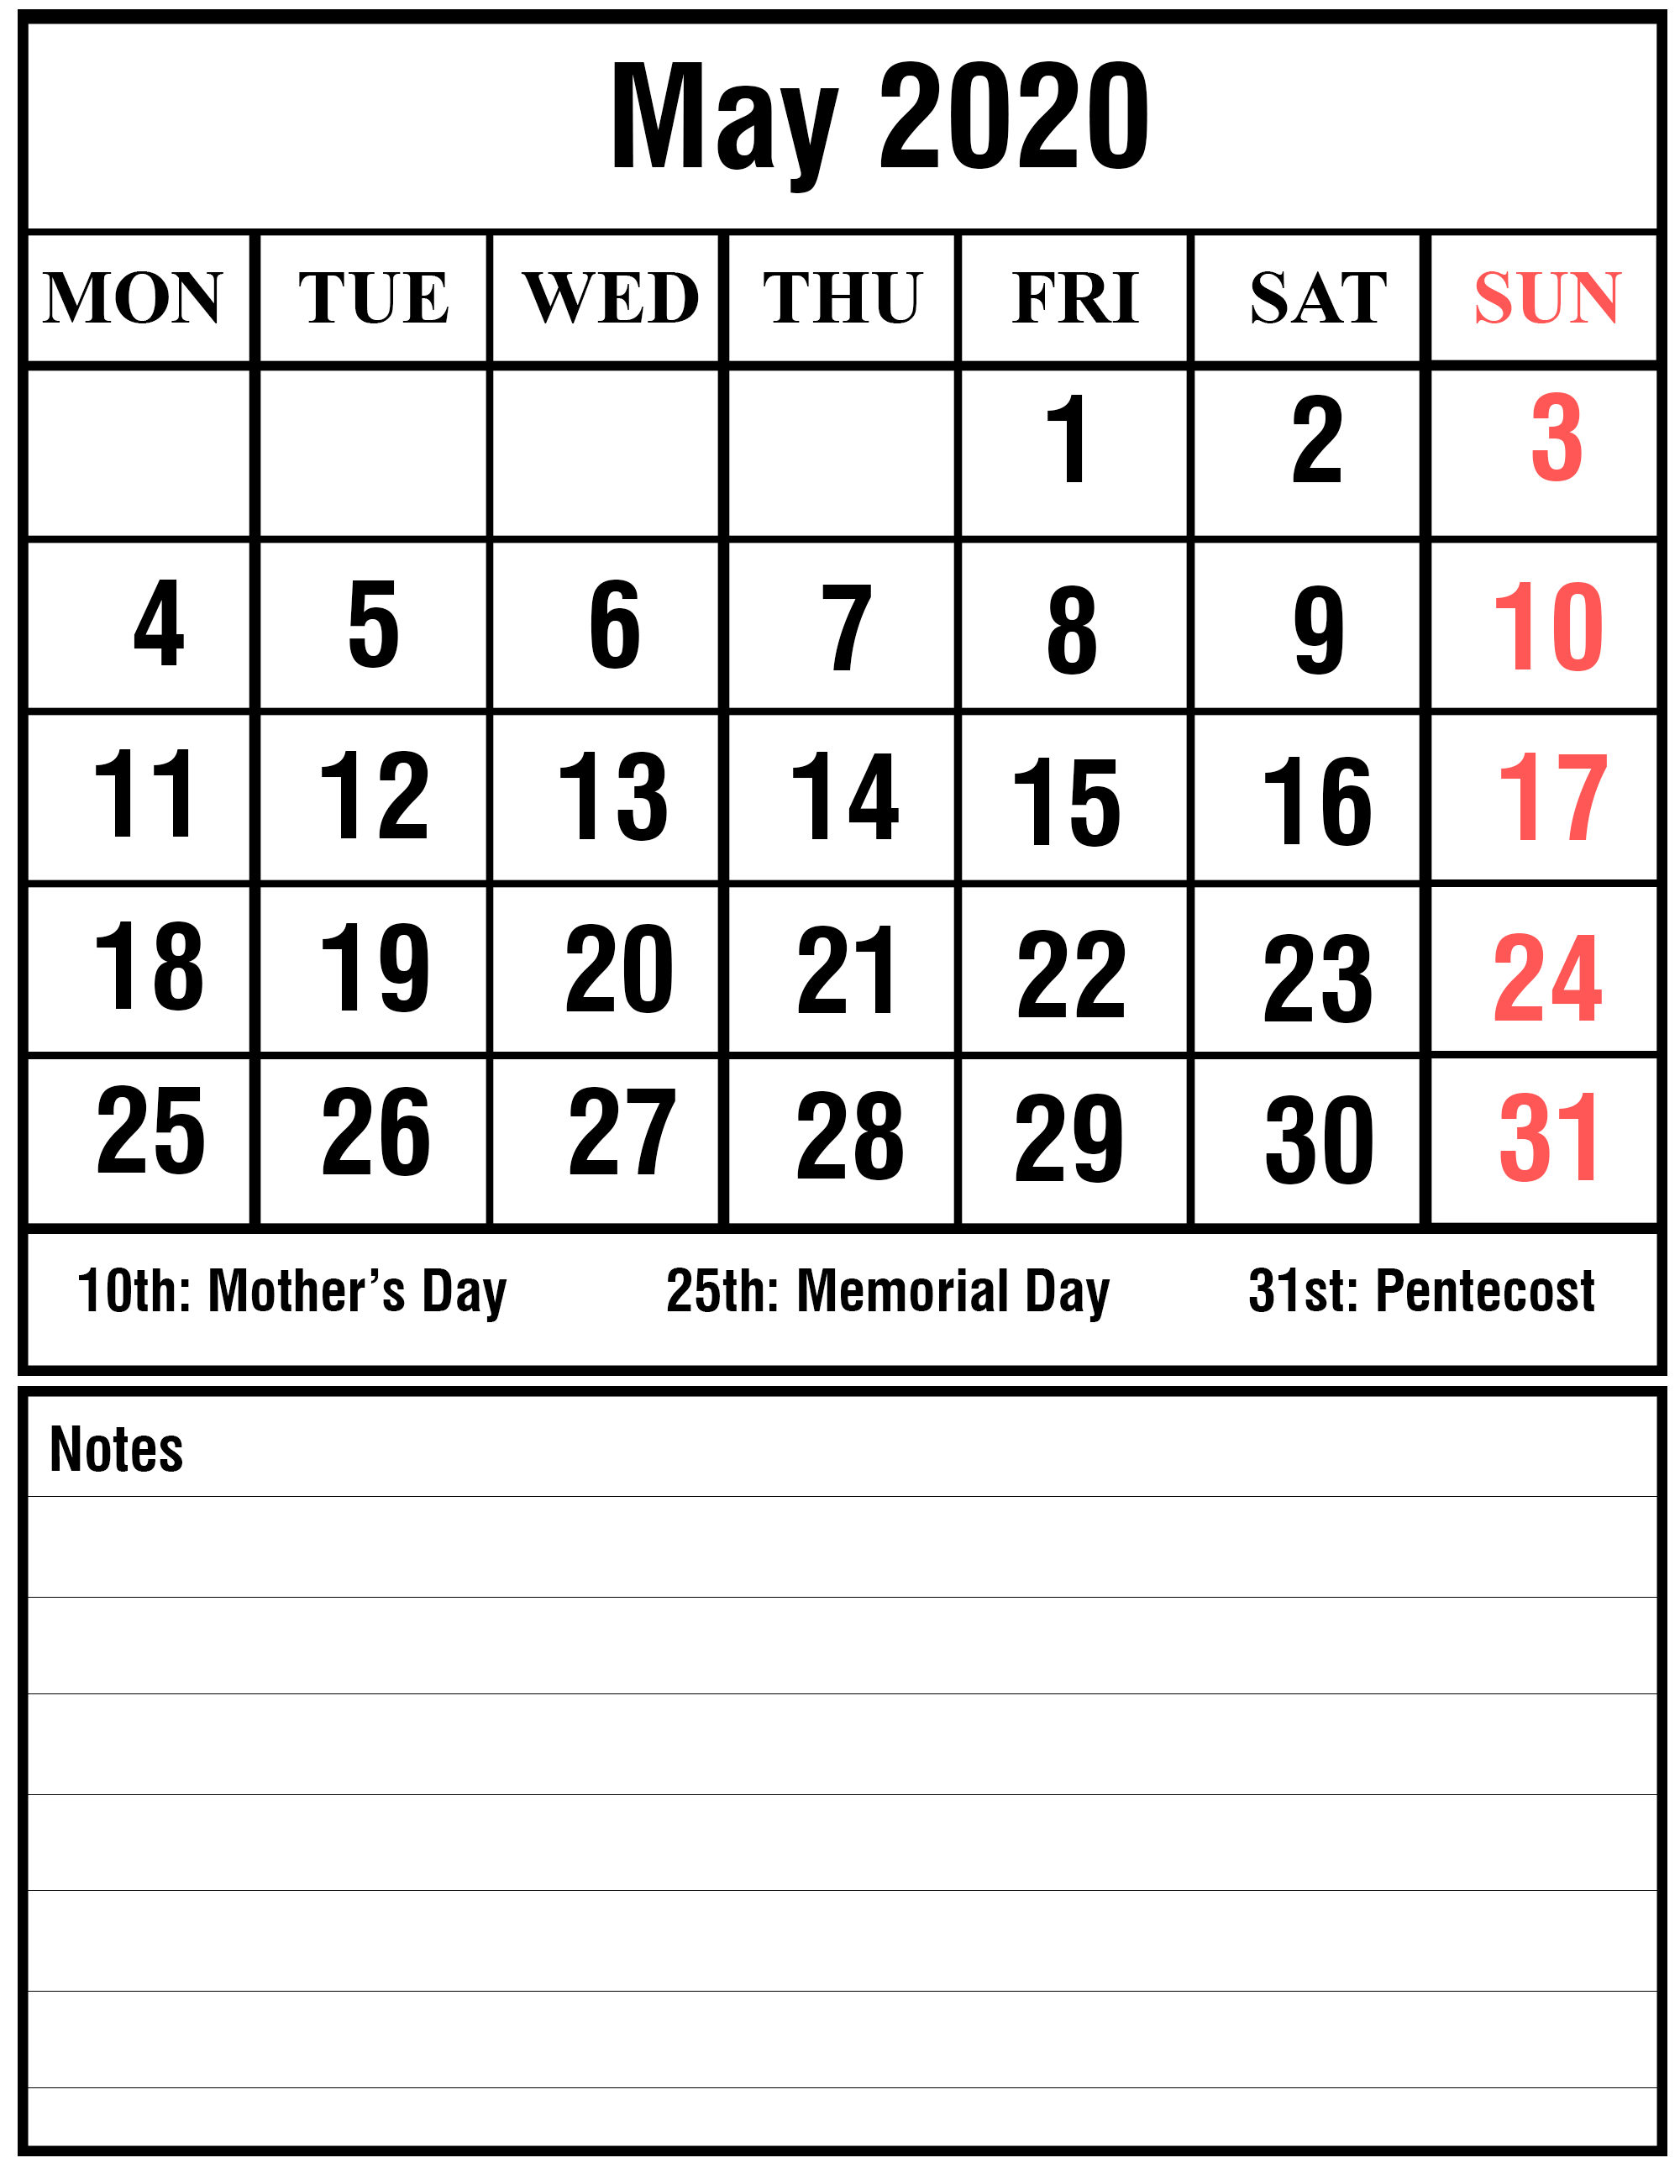 May 2020 Calendar Template With Notes